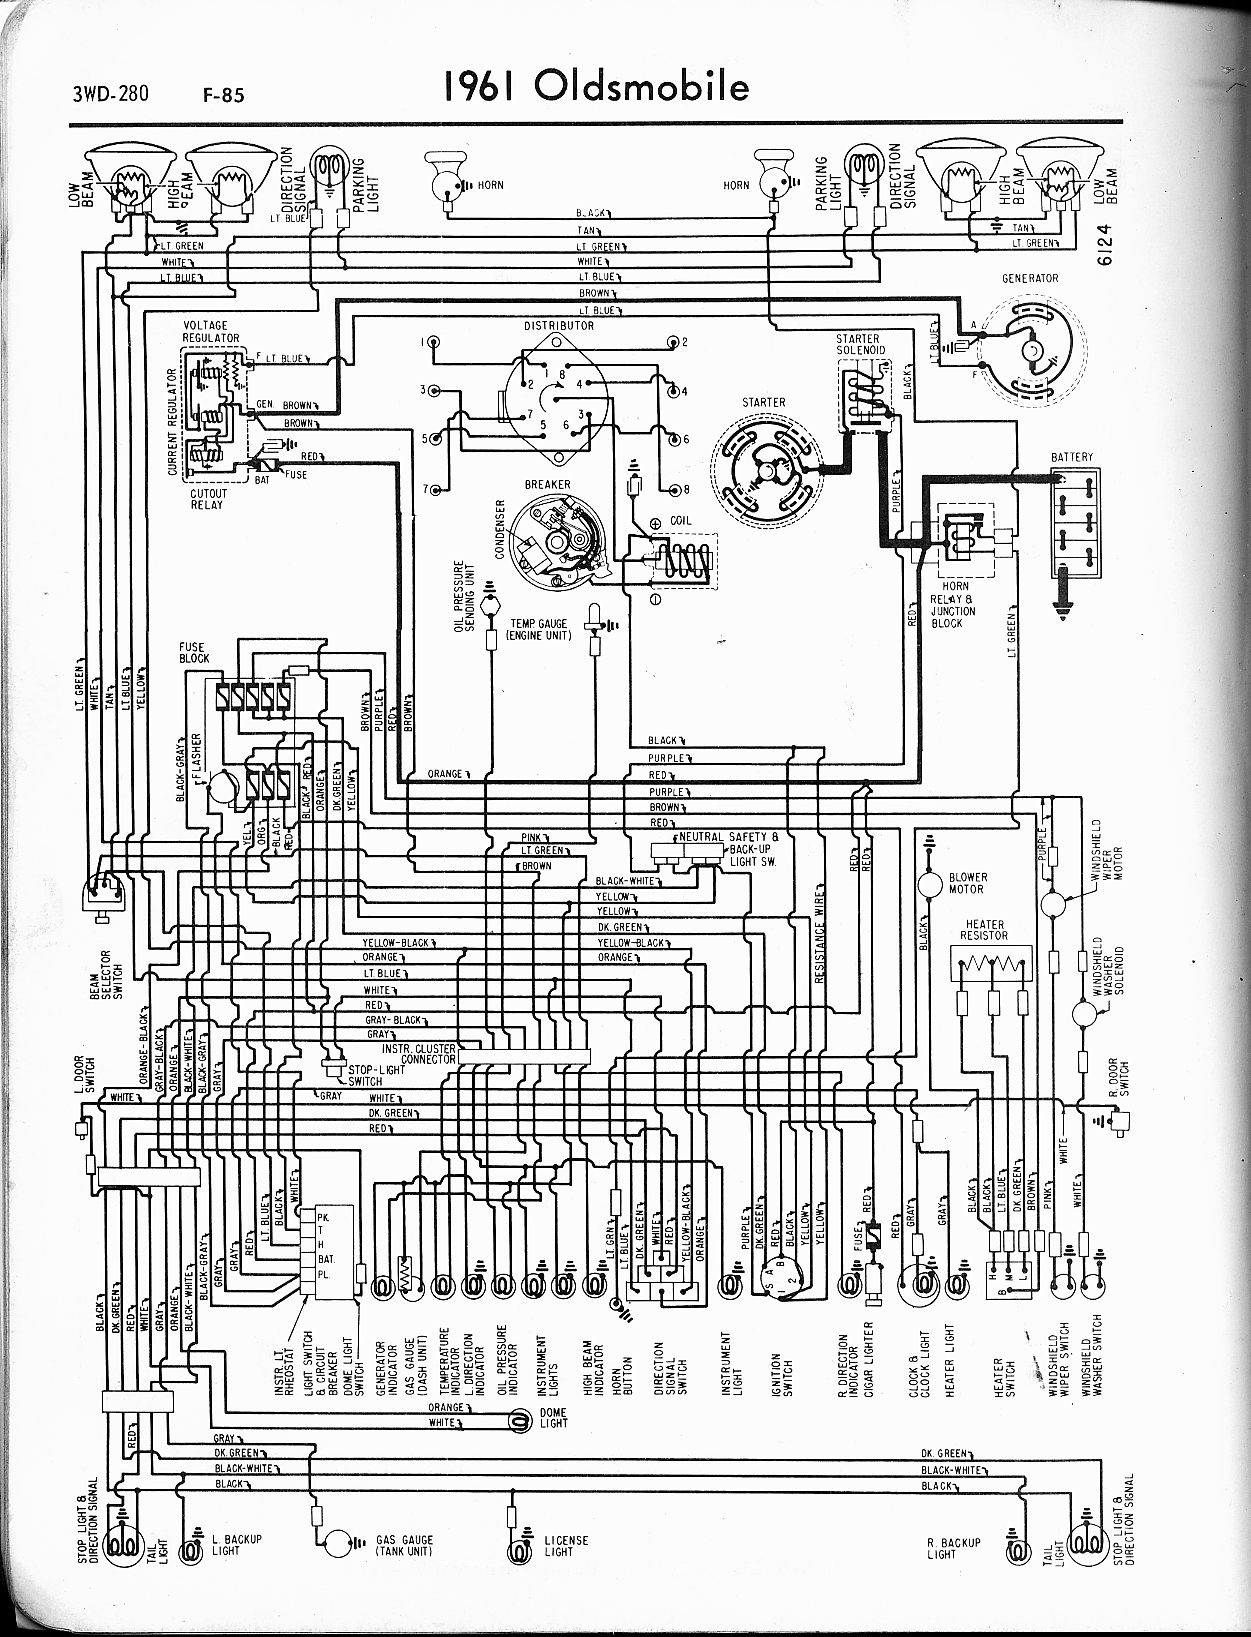 1970 Oldsmobile Wiring Diagram Guide And Troubleshooting Of 1971 Firebird Cutlass Supreme Pictures Gm Diagrams For Dummies